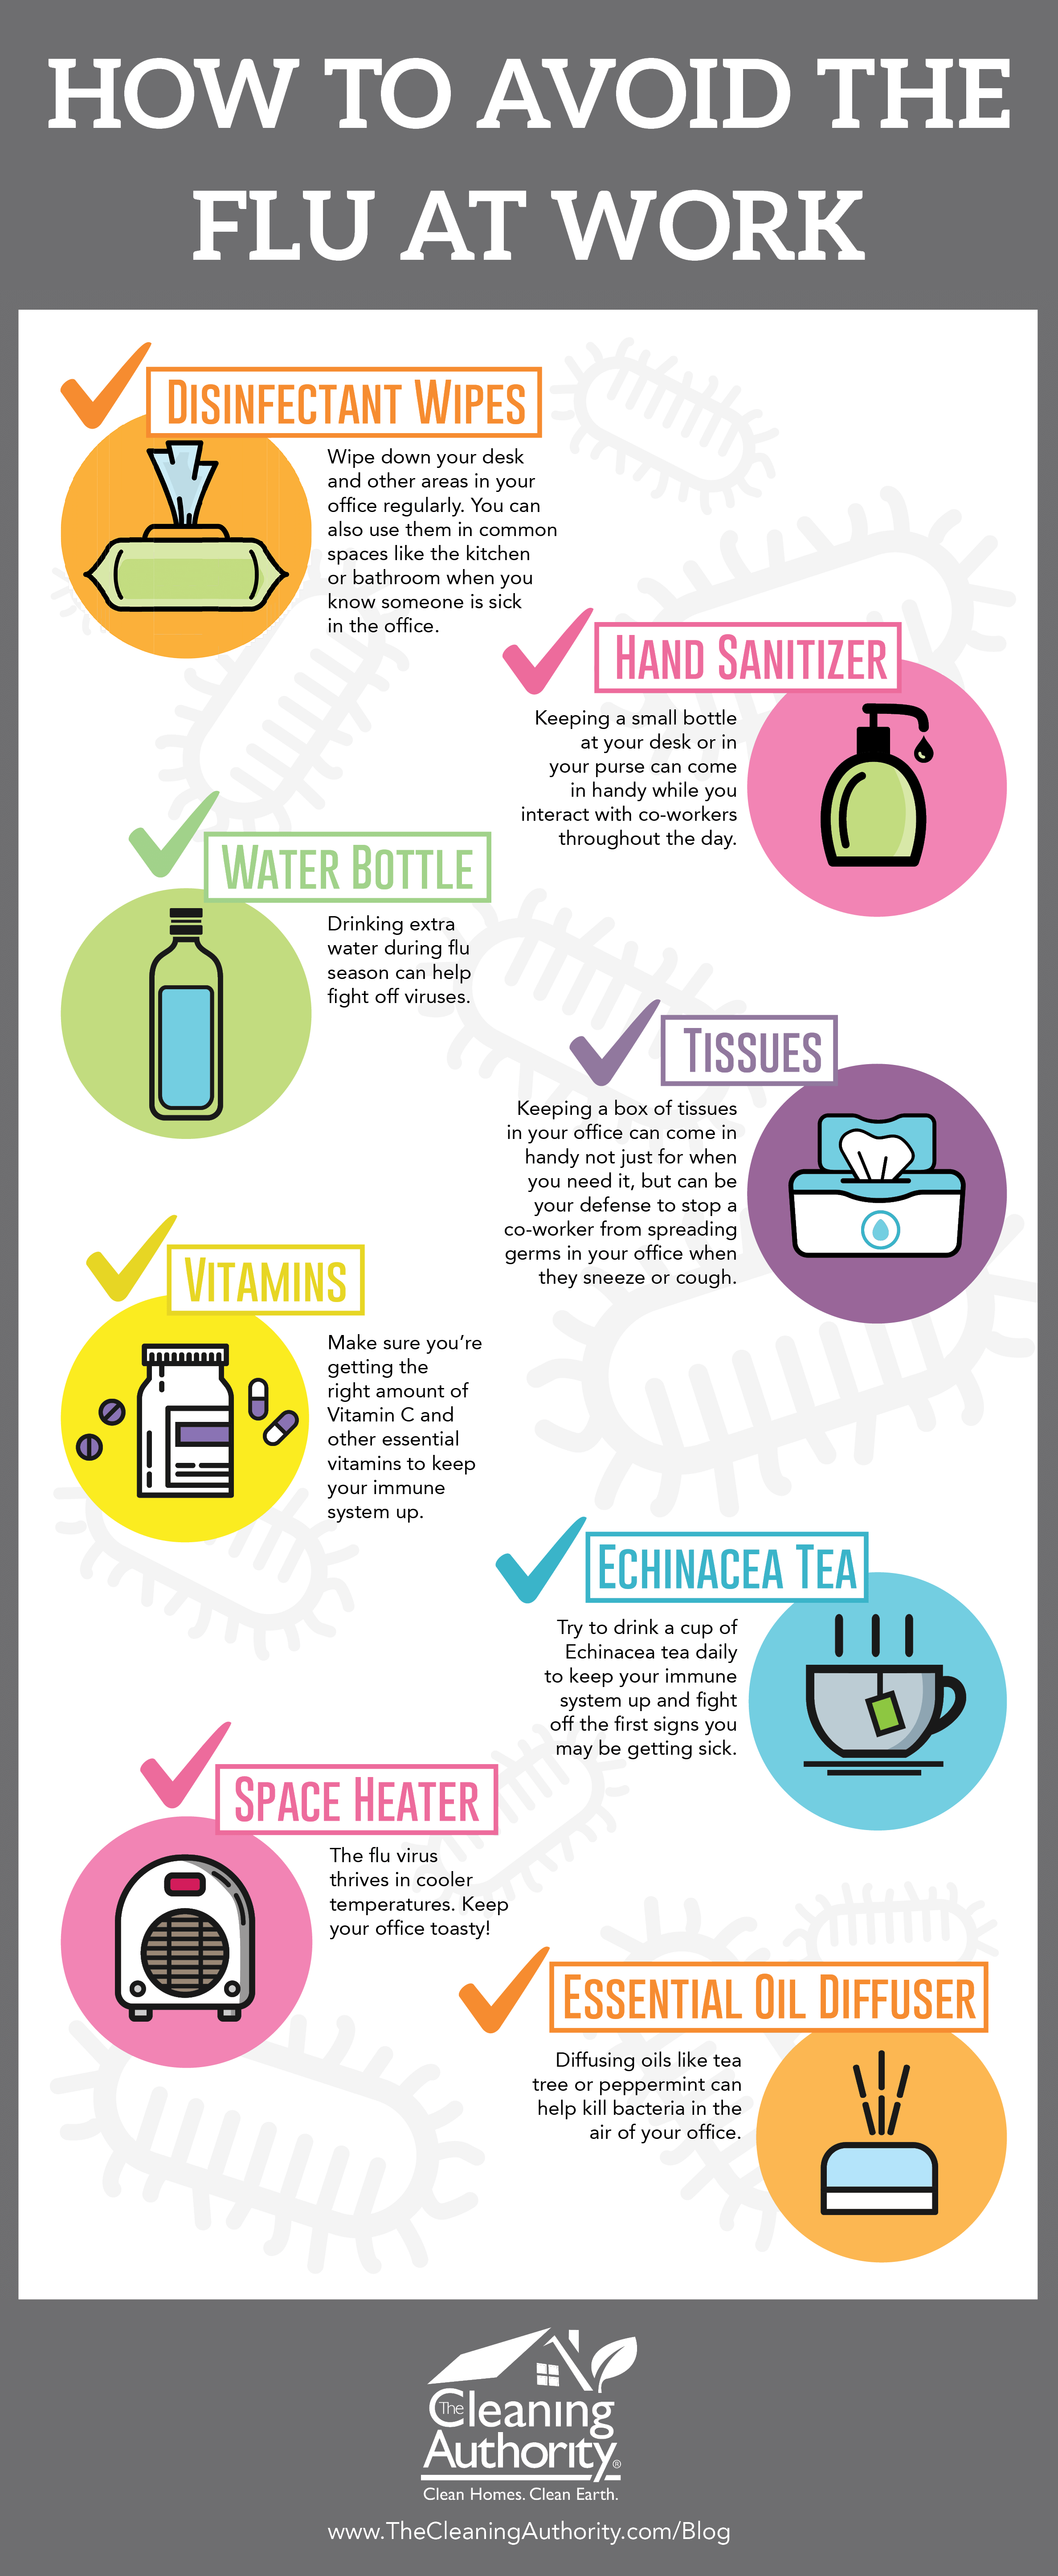 How to Avoid the Flu at Work